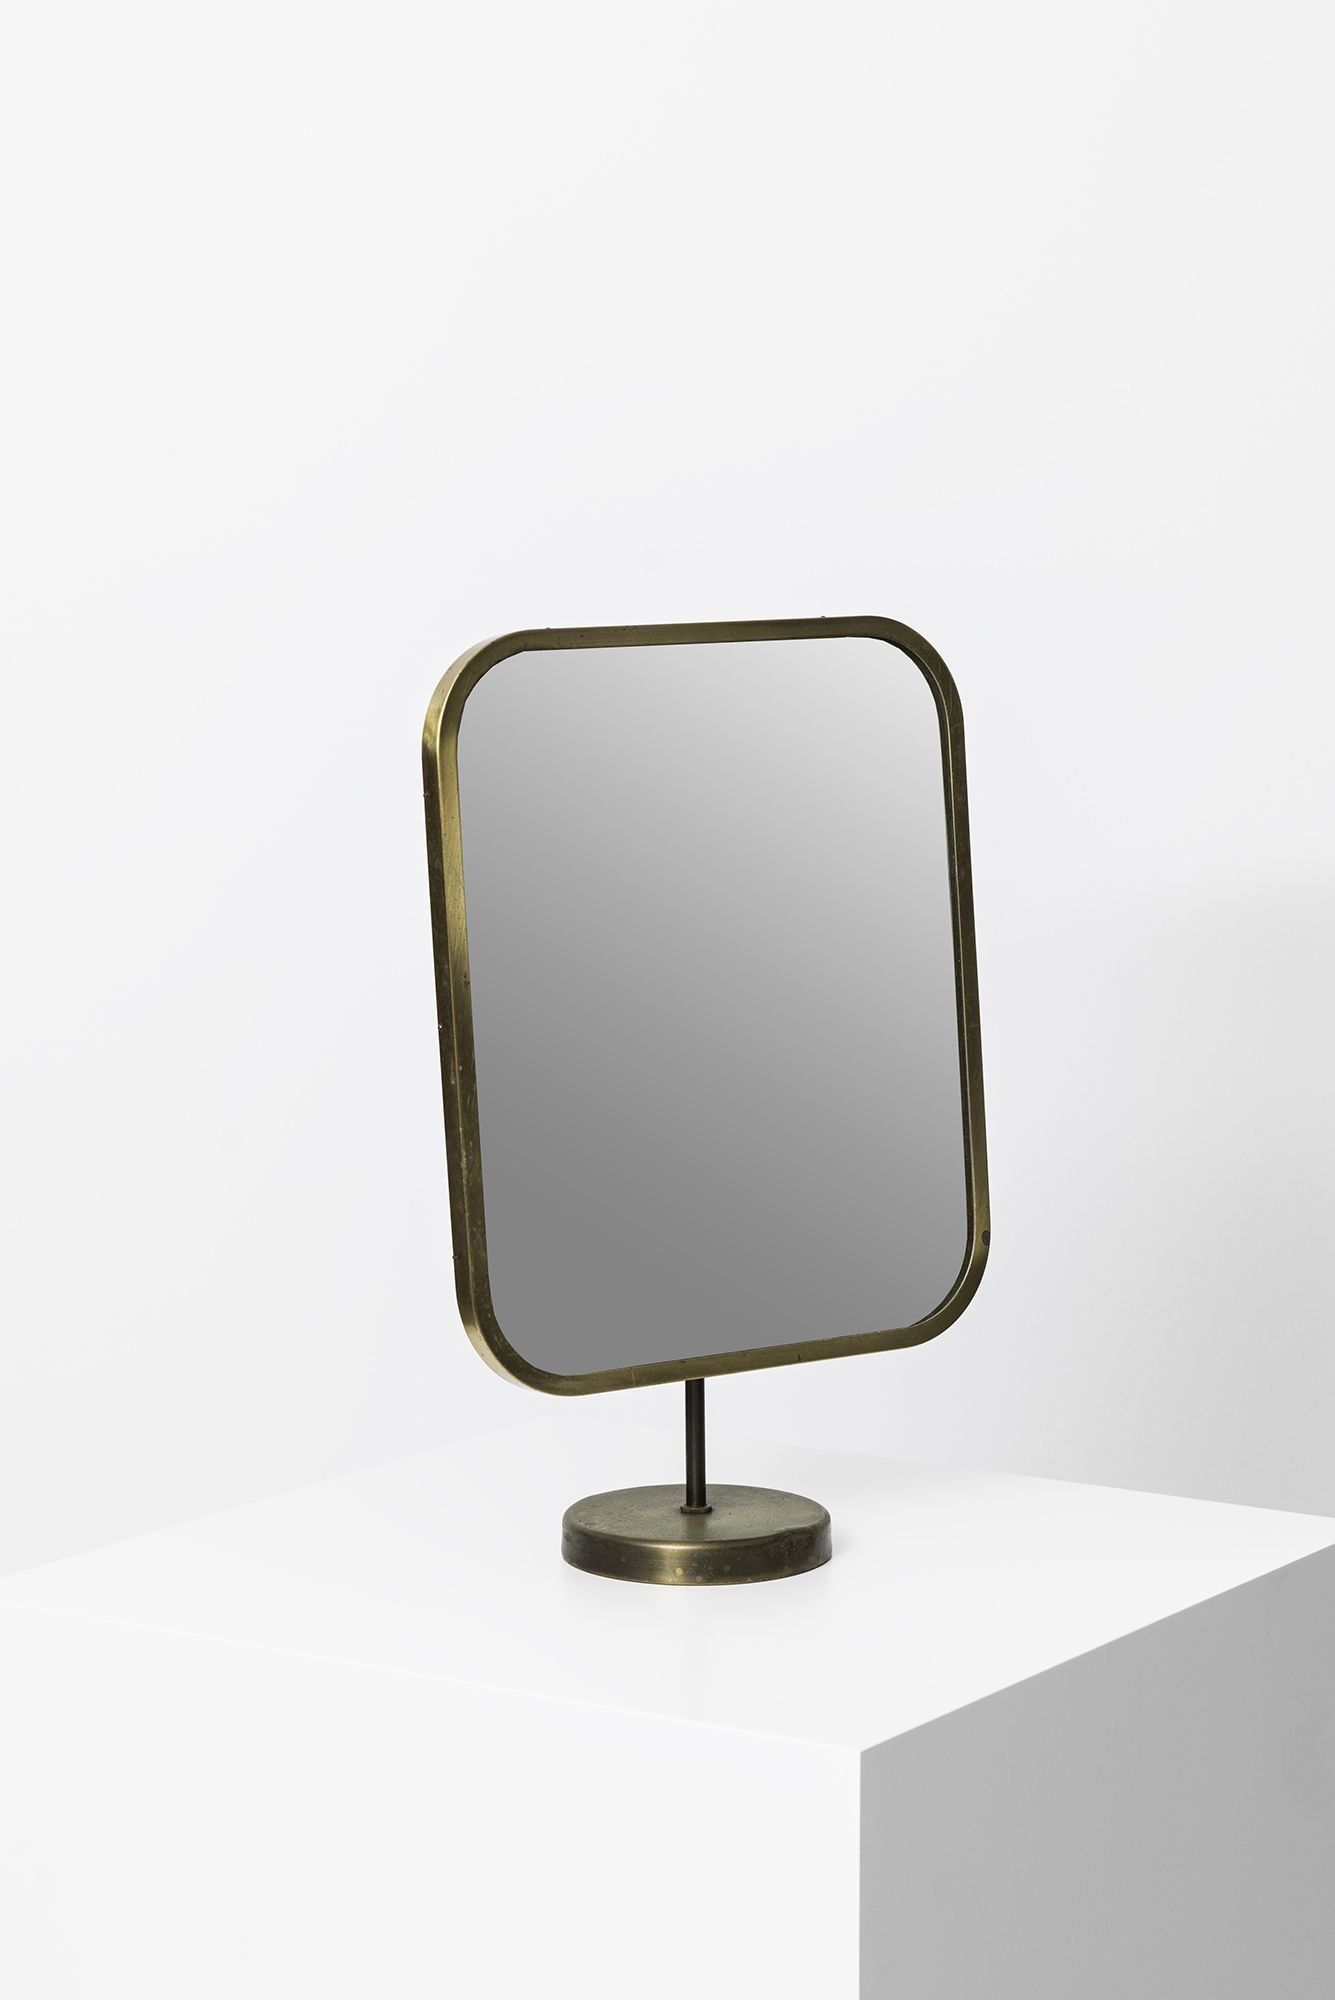 Josef Frank; Brass and Glass Table Mirror for Nordiska Kompaniet ... - Josef Frank; Brass and Glass Table Mirror for Nordiska Kompaniet, 1950s.  Via Studio